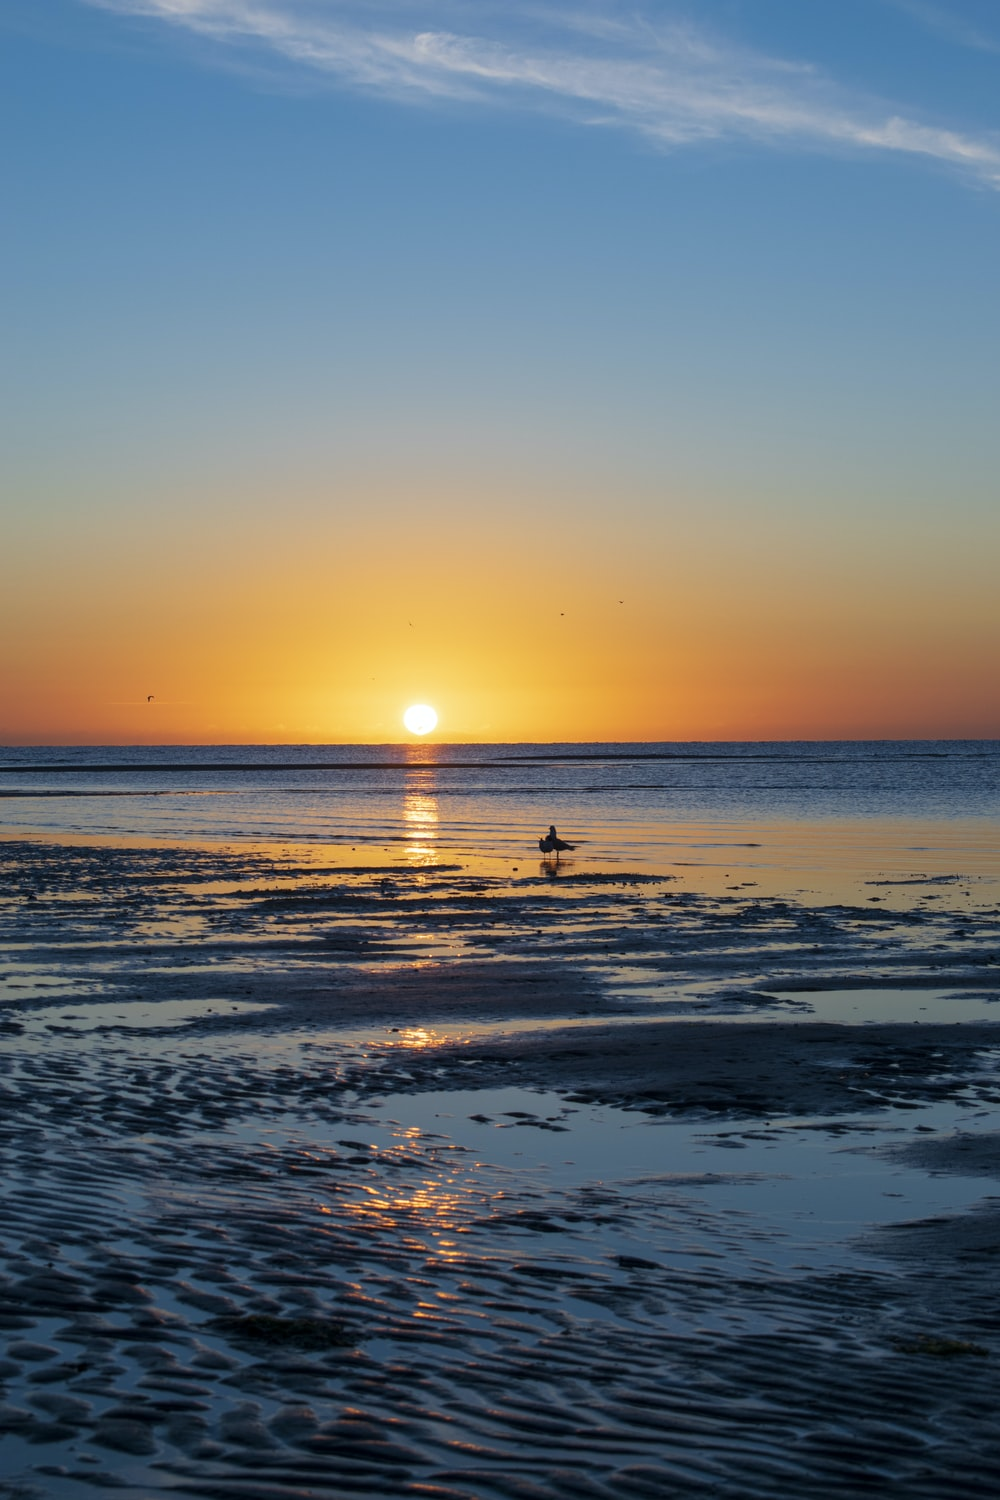 silhouette of person on beach during sunset